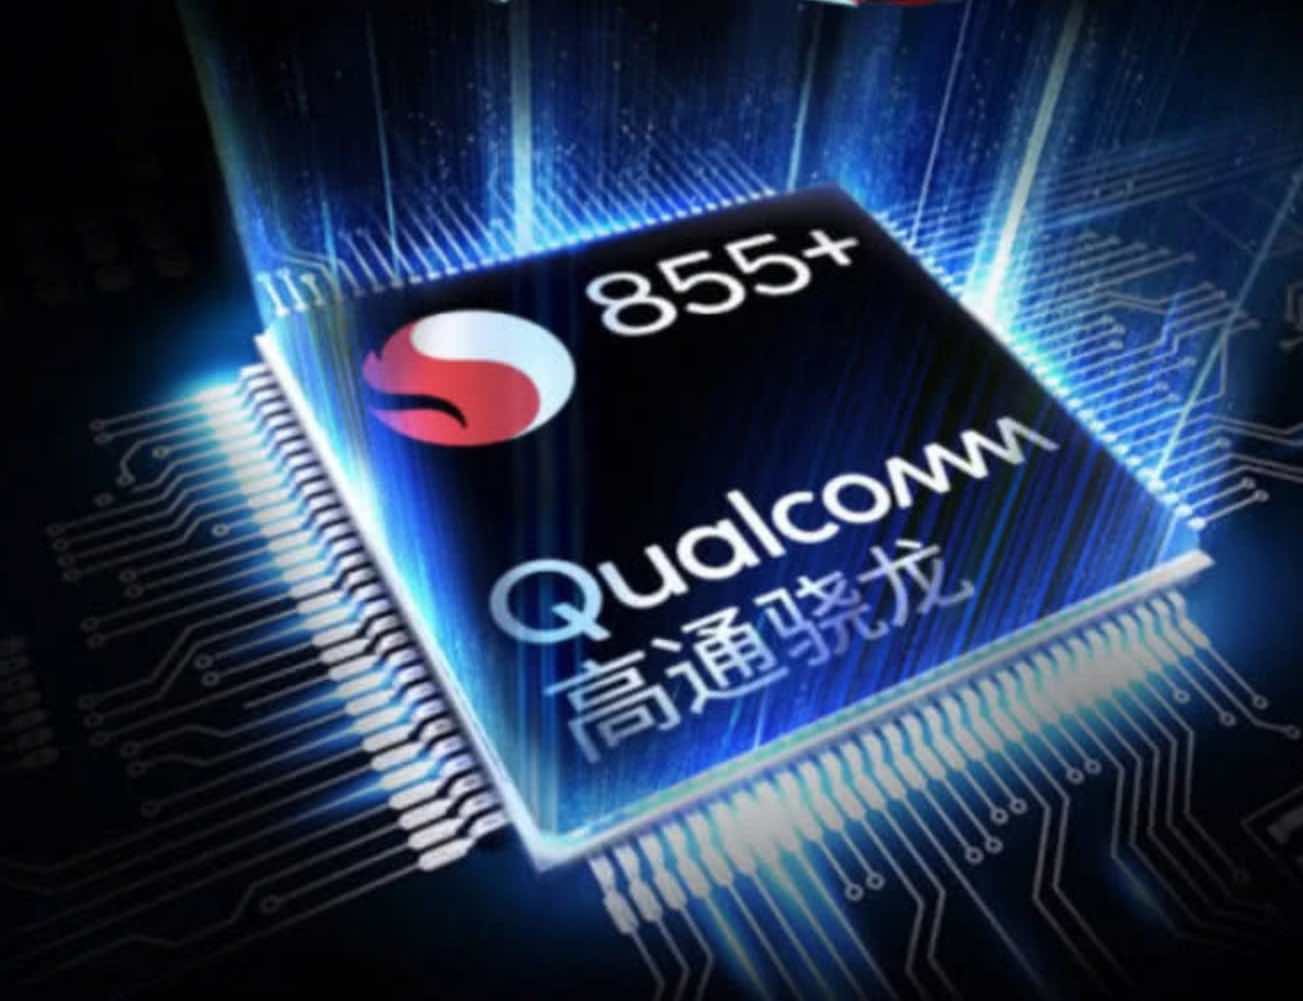 Why Qualcomm Suddenly Released 855+ when it is not Fully 5G